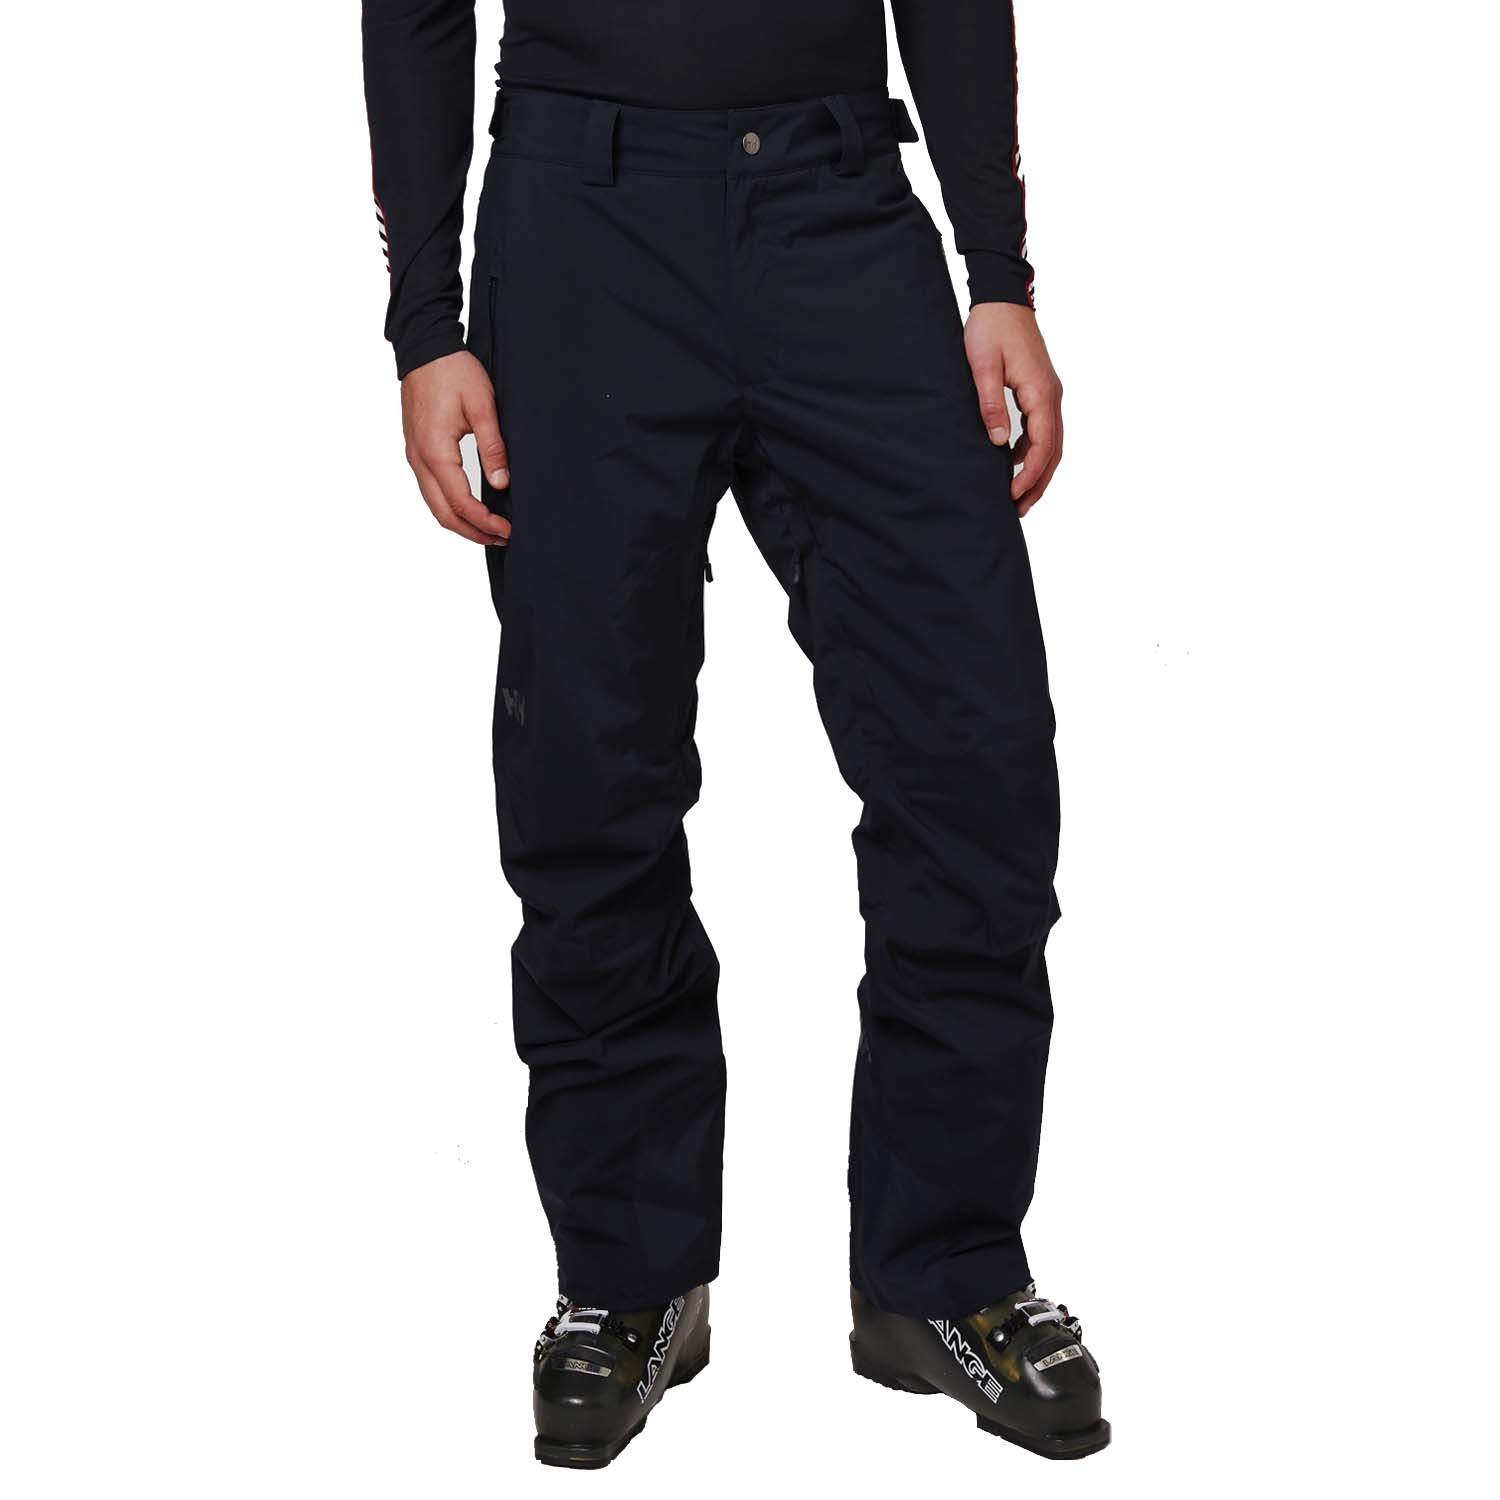 Helly Hansen Legendary Insulated Pant Navy 2020